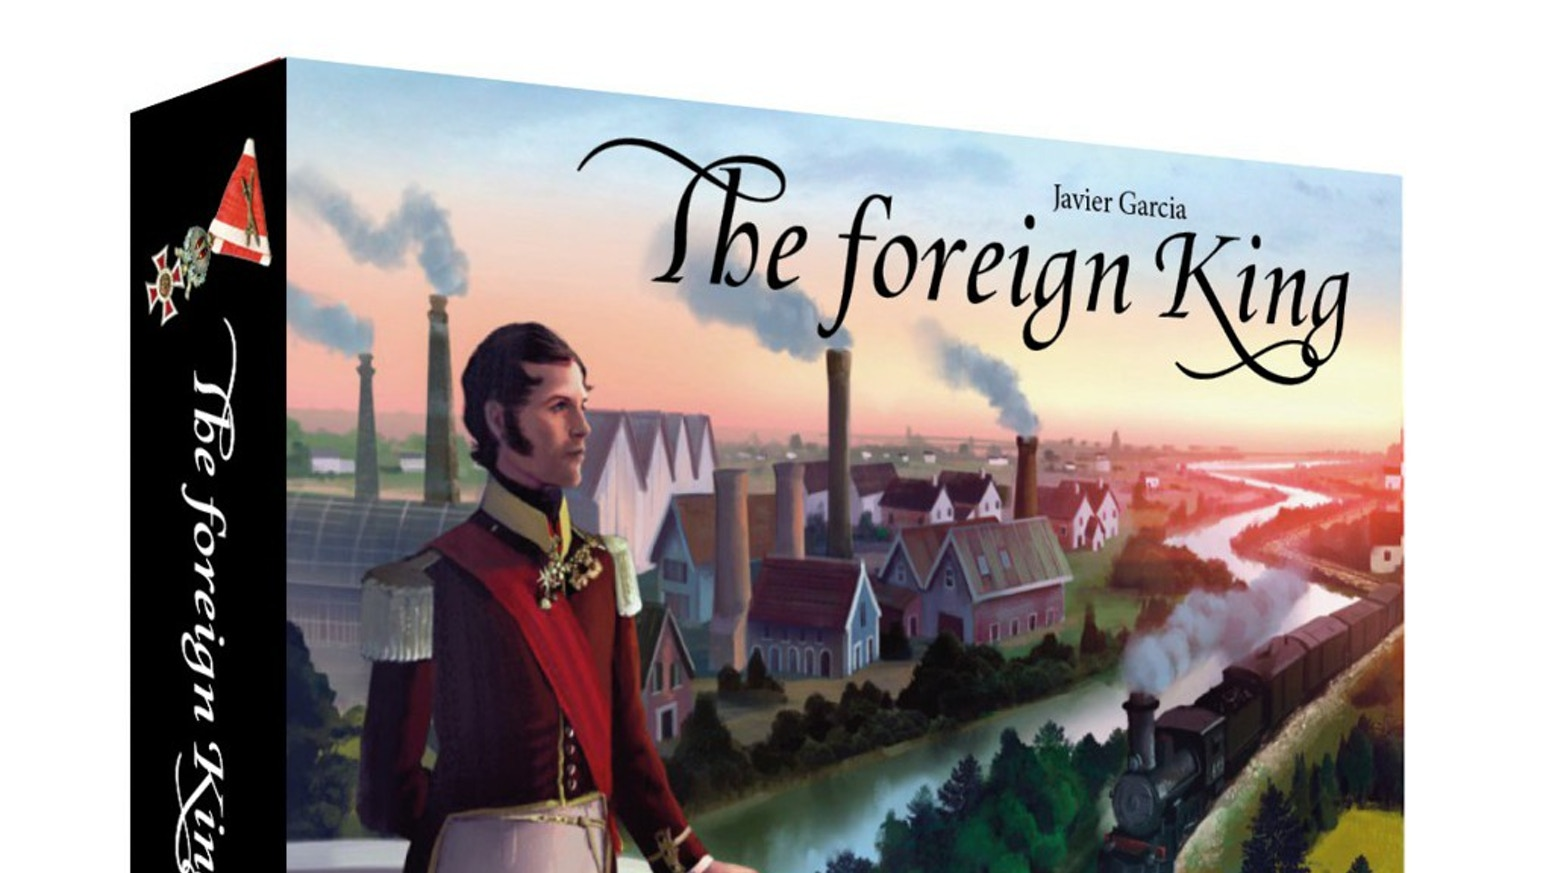 Belgium, 1831. A foreign King seats on the throne and leads his Kingdom in the race to industrialization